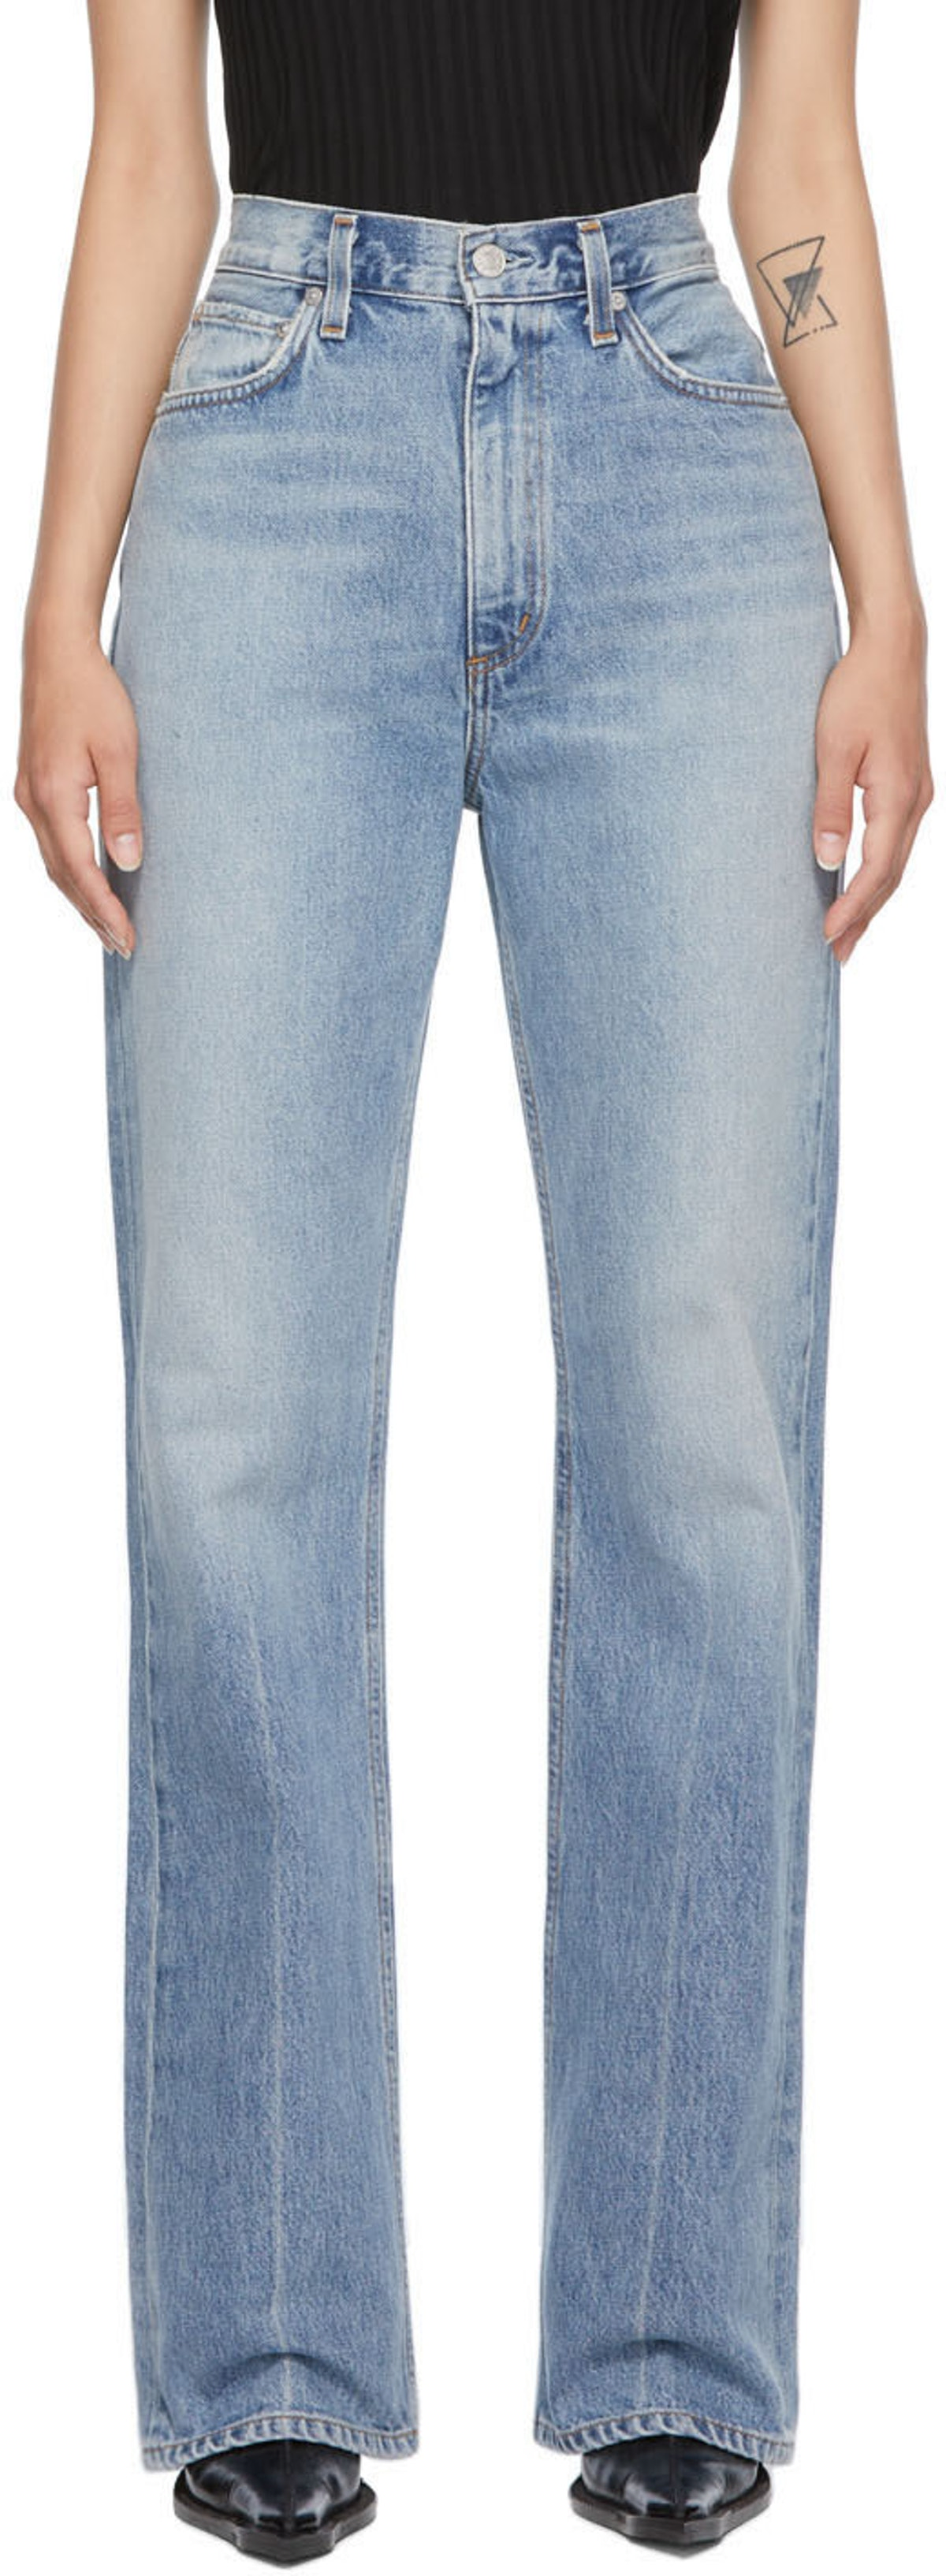 Blue Vintage High-Rise Flare Jeans from AGOLDE, available to shop on SSENSE.